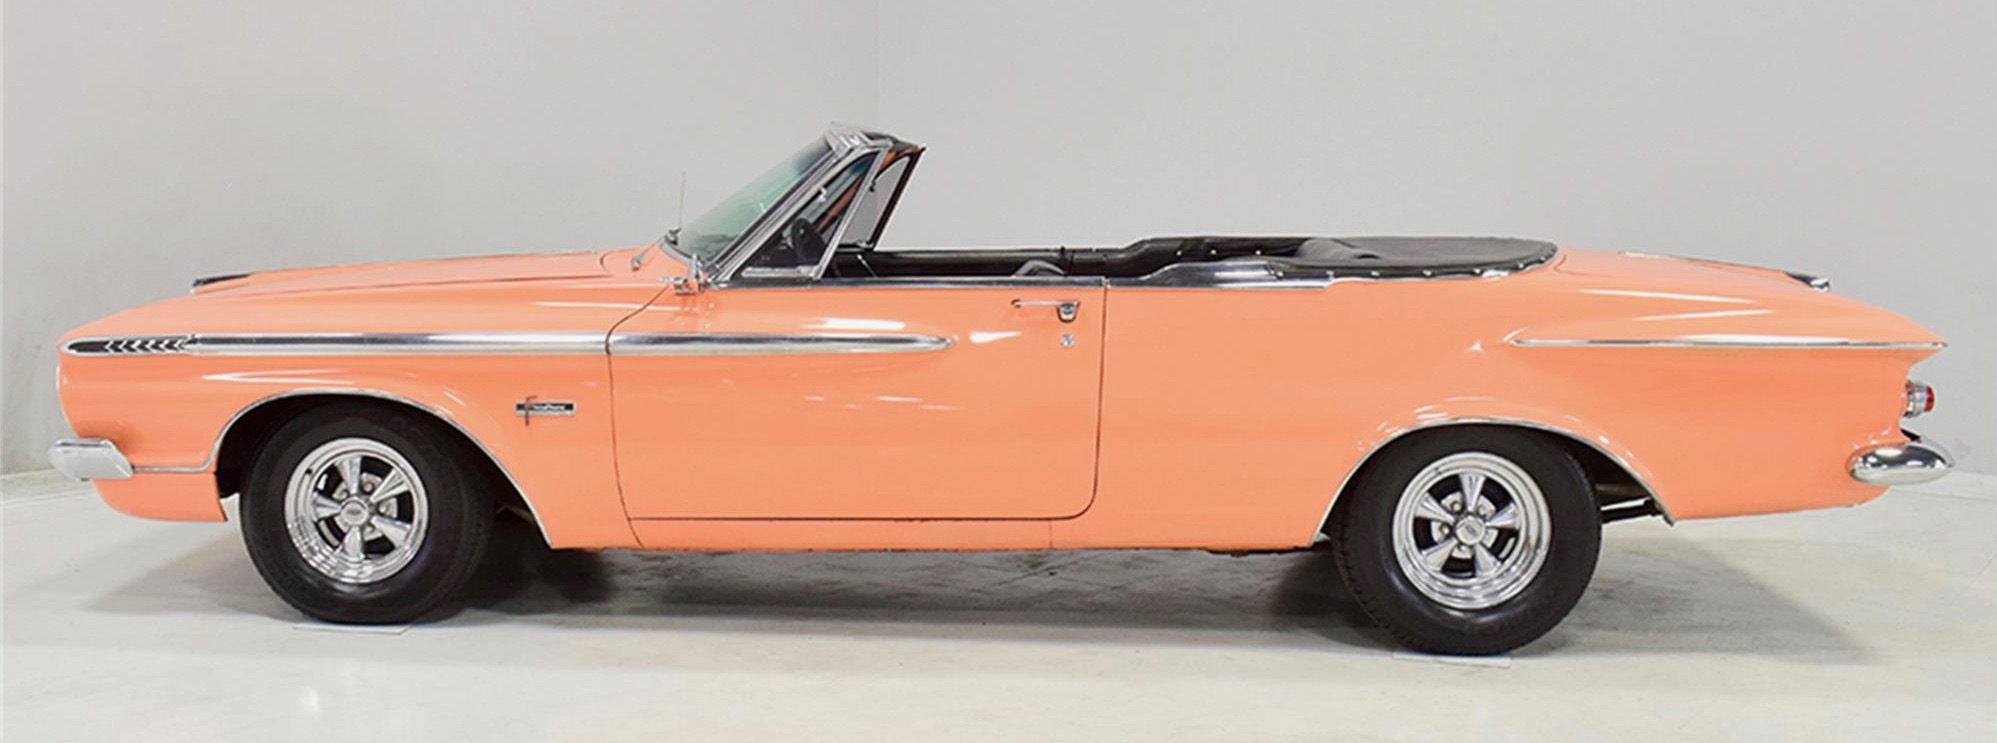 1962 Plymouth Sport Fury convertible, Not pink. Not orange. Not even salmon. But it is a 1962 Plymouth Sport Fury convertible, ClassicCars.com Journal